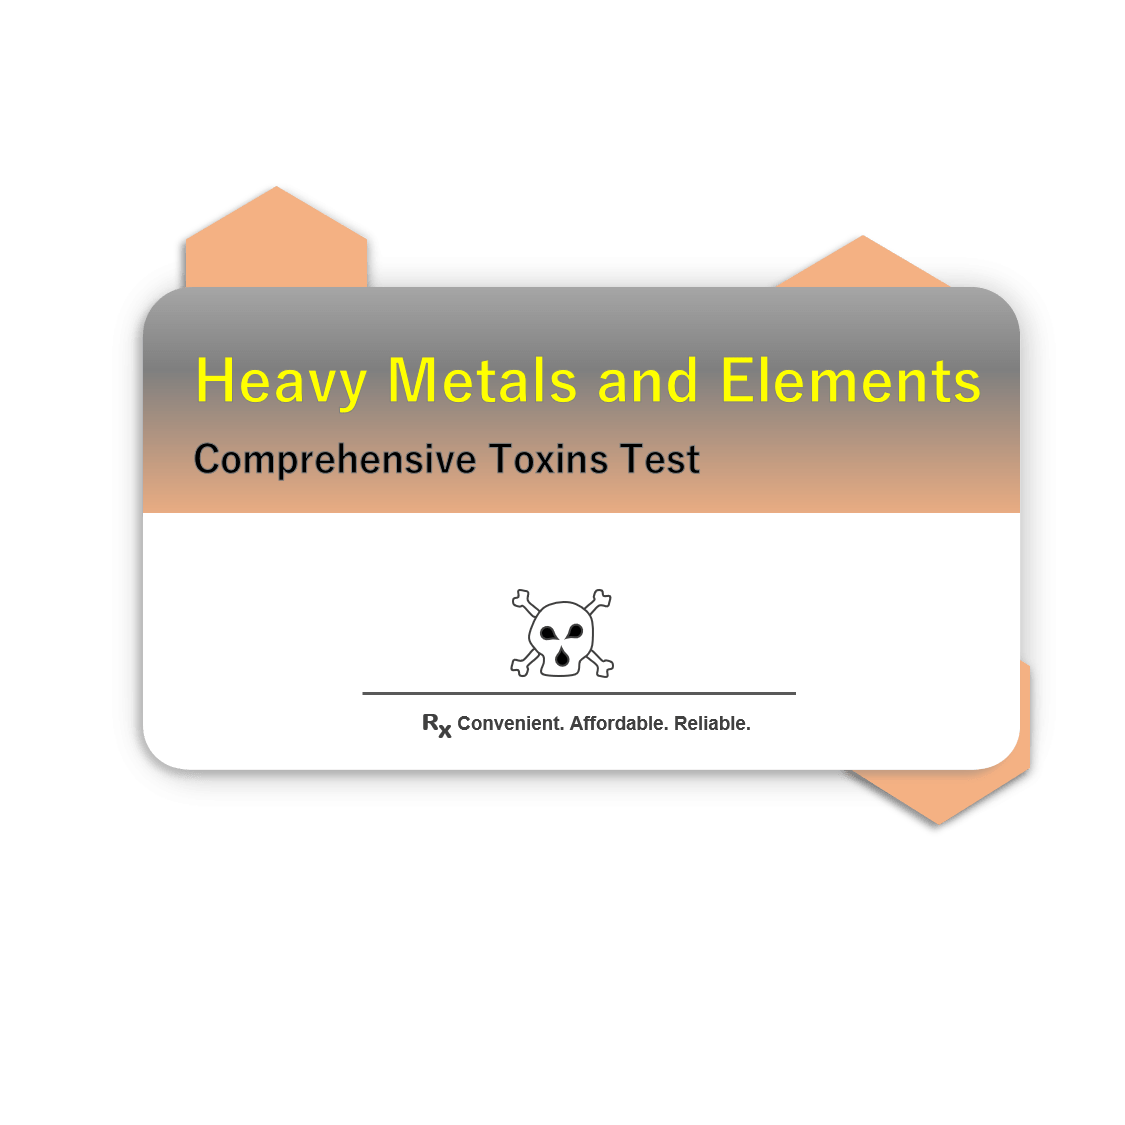 Heavy Metals and Elements Test